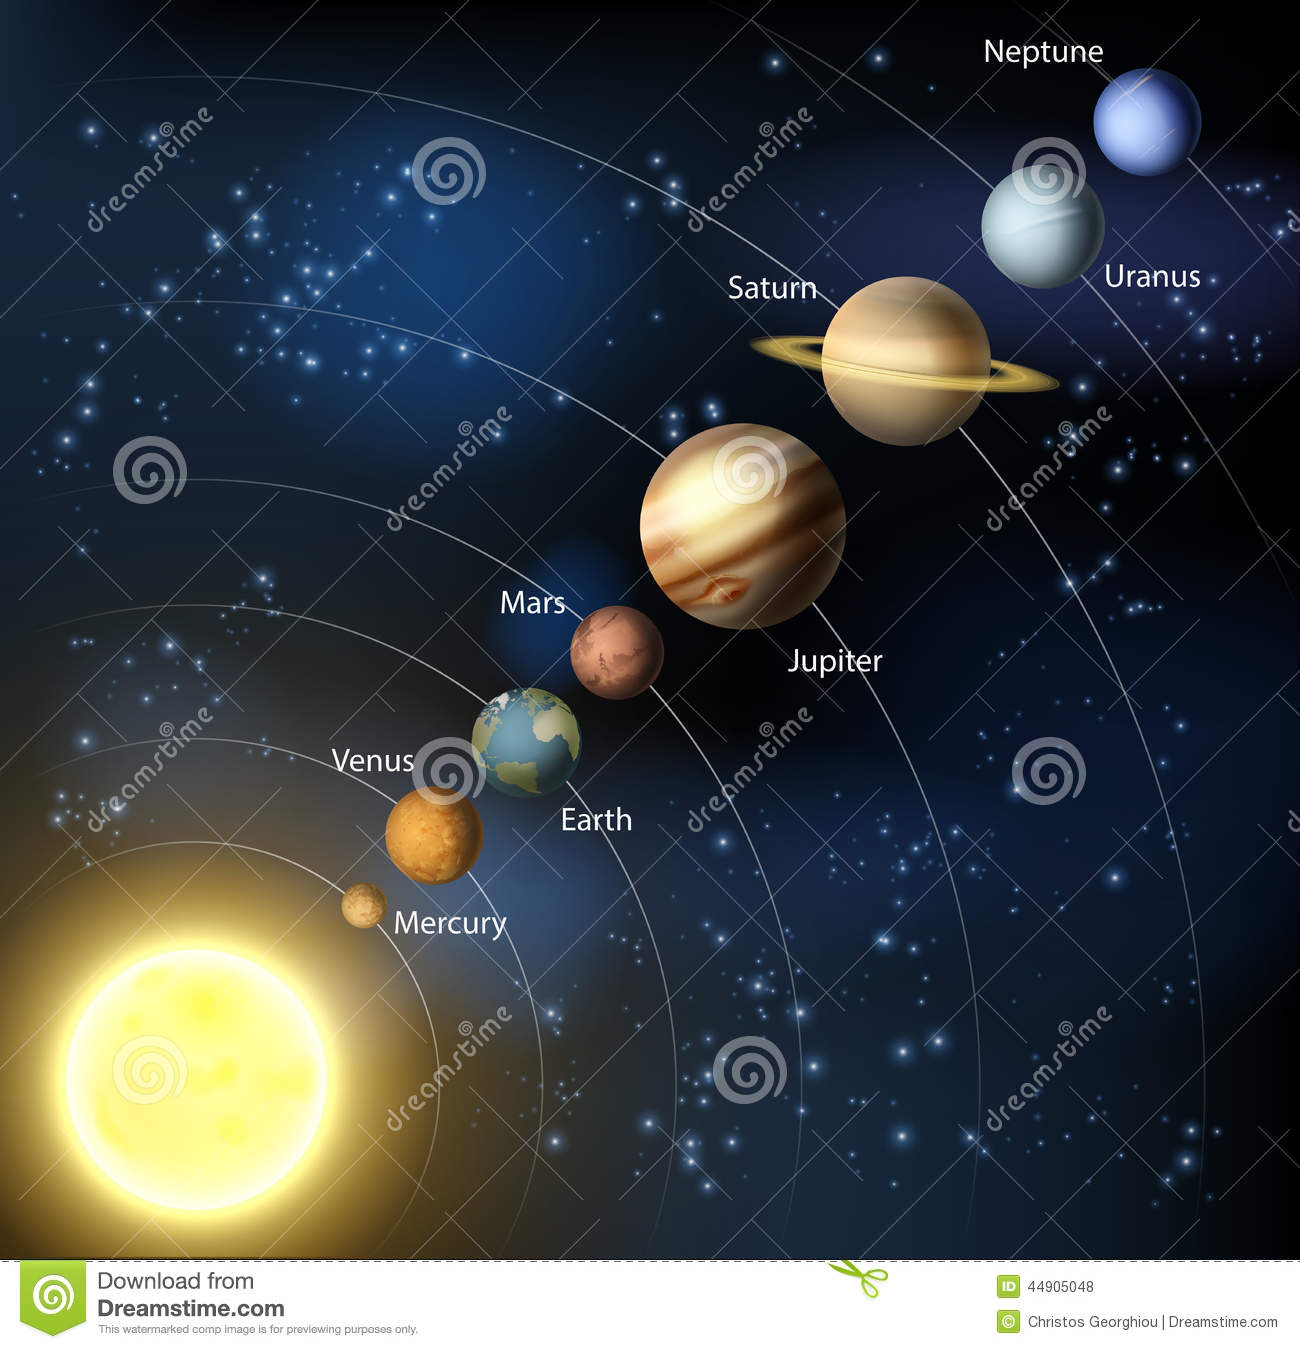 ... illustration of the planets in orbit around the sun with labels